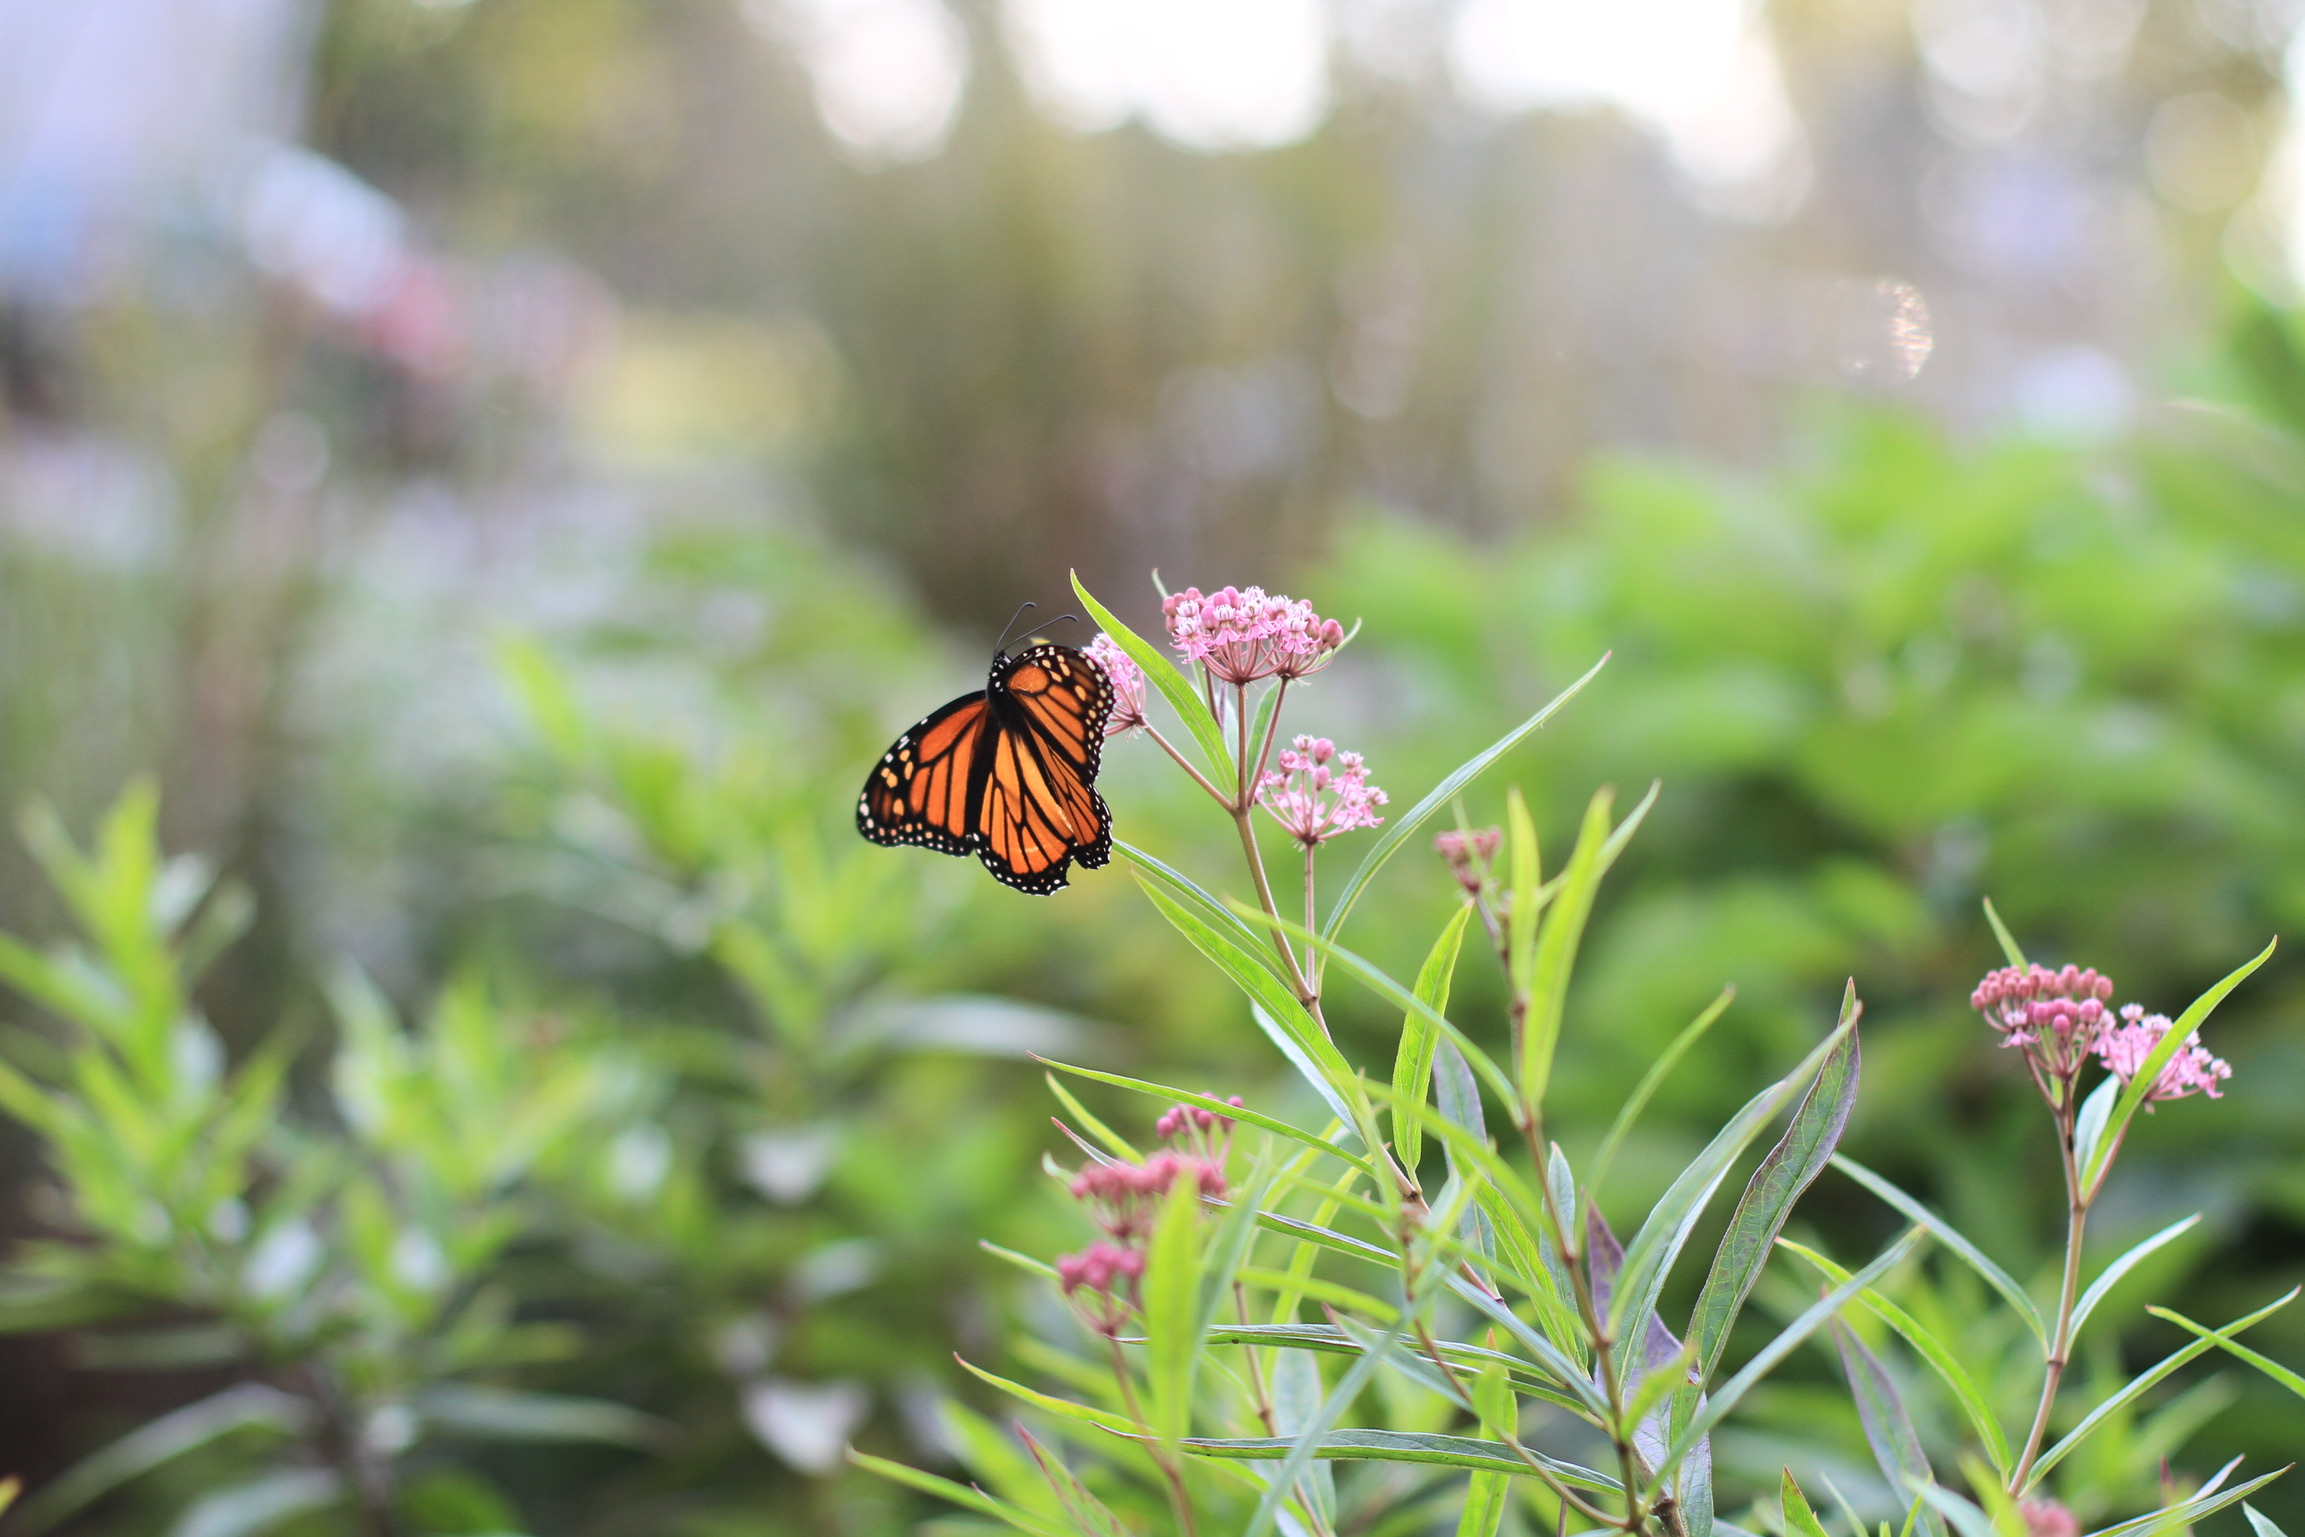 A monarch ( Danaus plexippus ) utilizing the milkweed ( Asclepias spp. )in Bryn Mawr, PA. Milkweed is an excellent plant for supporting pollinators, particularly because monarch populations rely on milkweed as hosts for their caterpillars so they can successfully reproduce.(Photo: Heather Rosenfeldt)